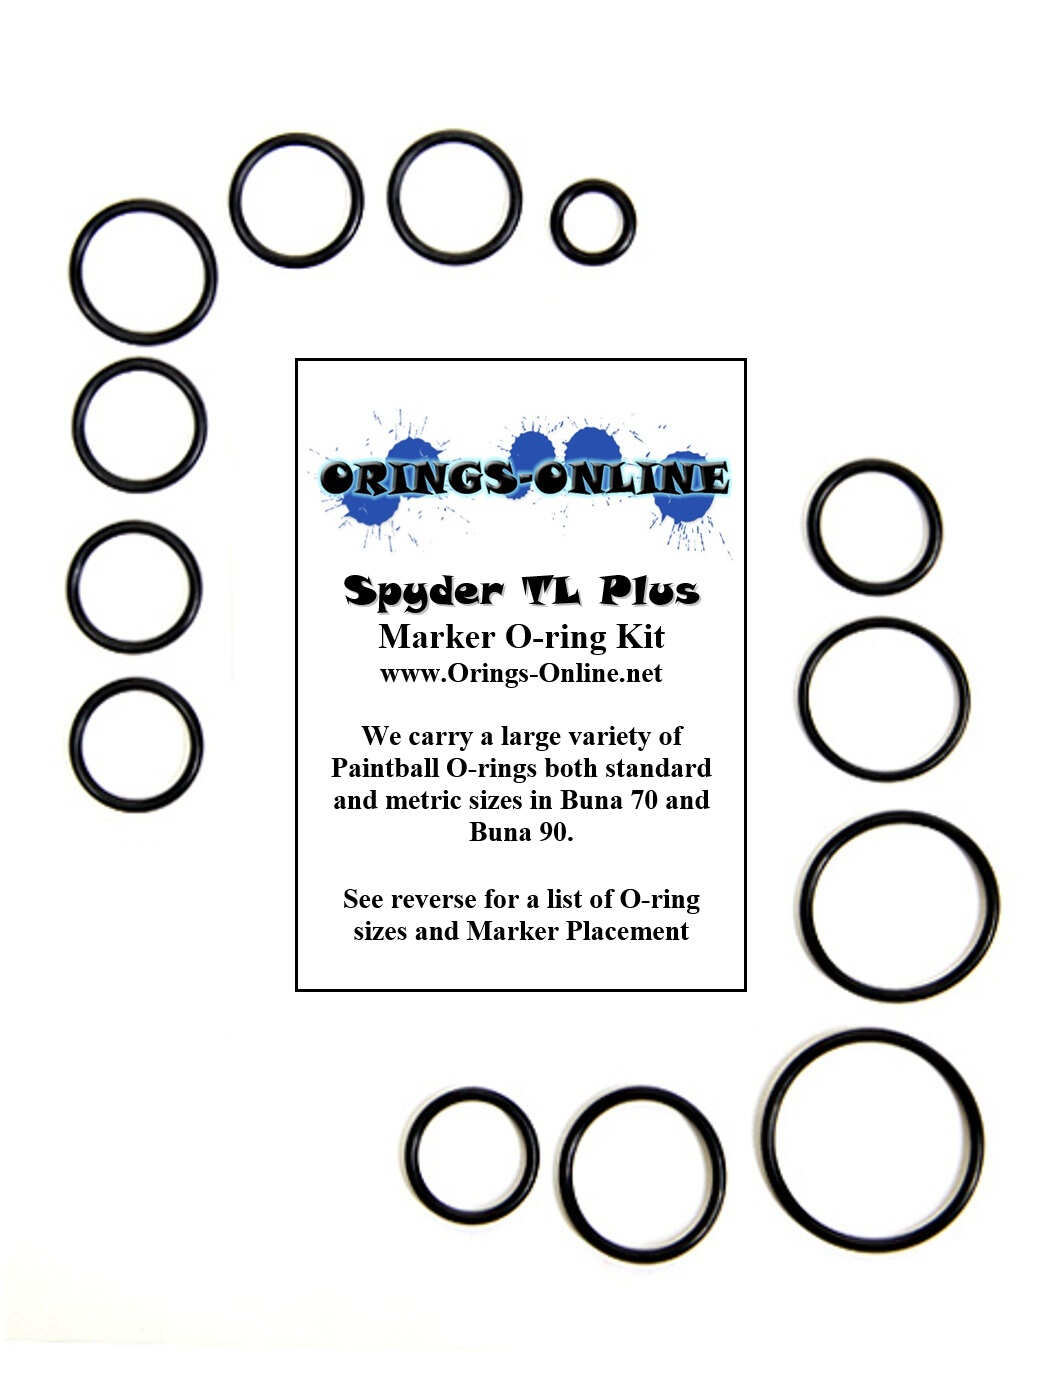 Spyder TL Plus Marker O-ring Kit